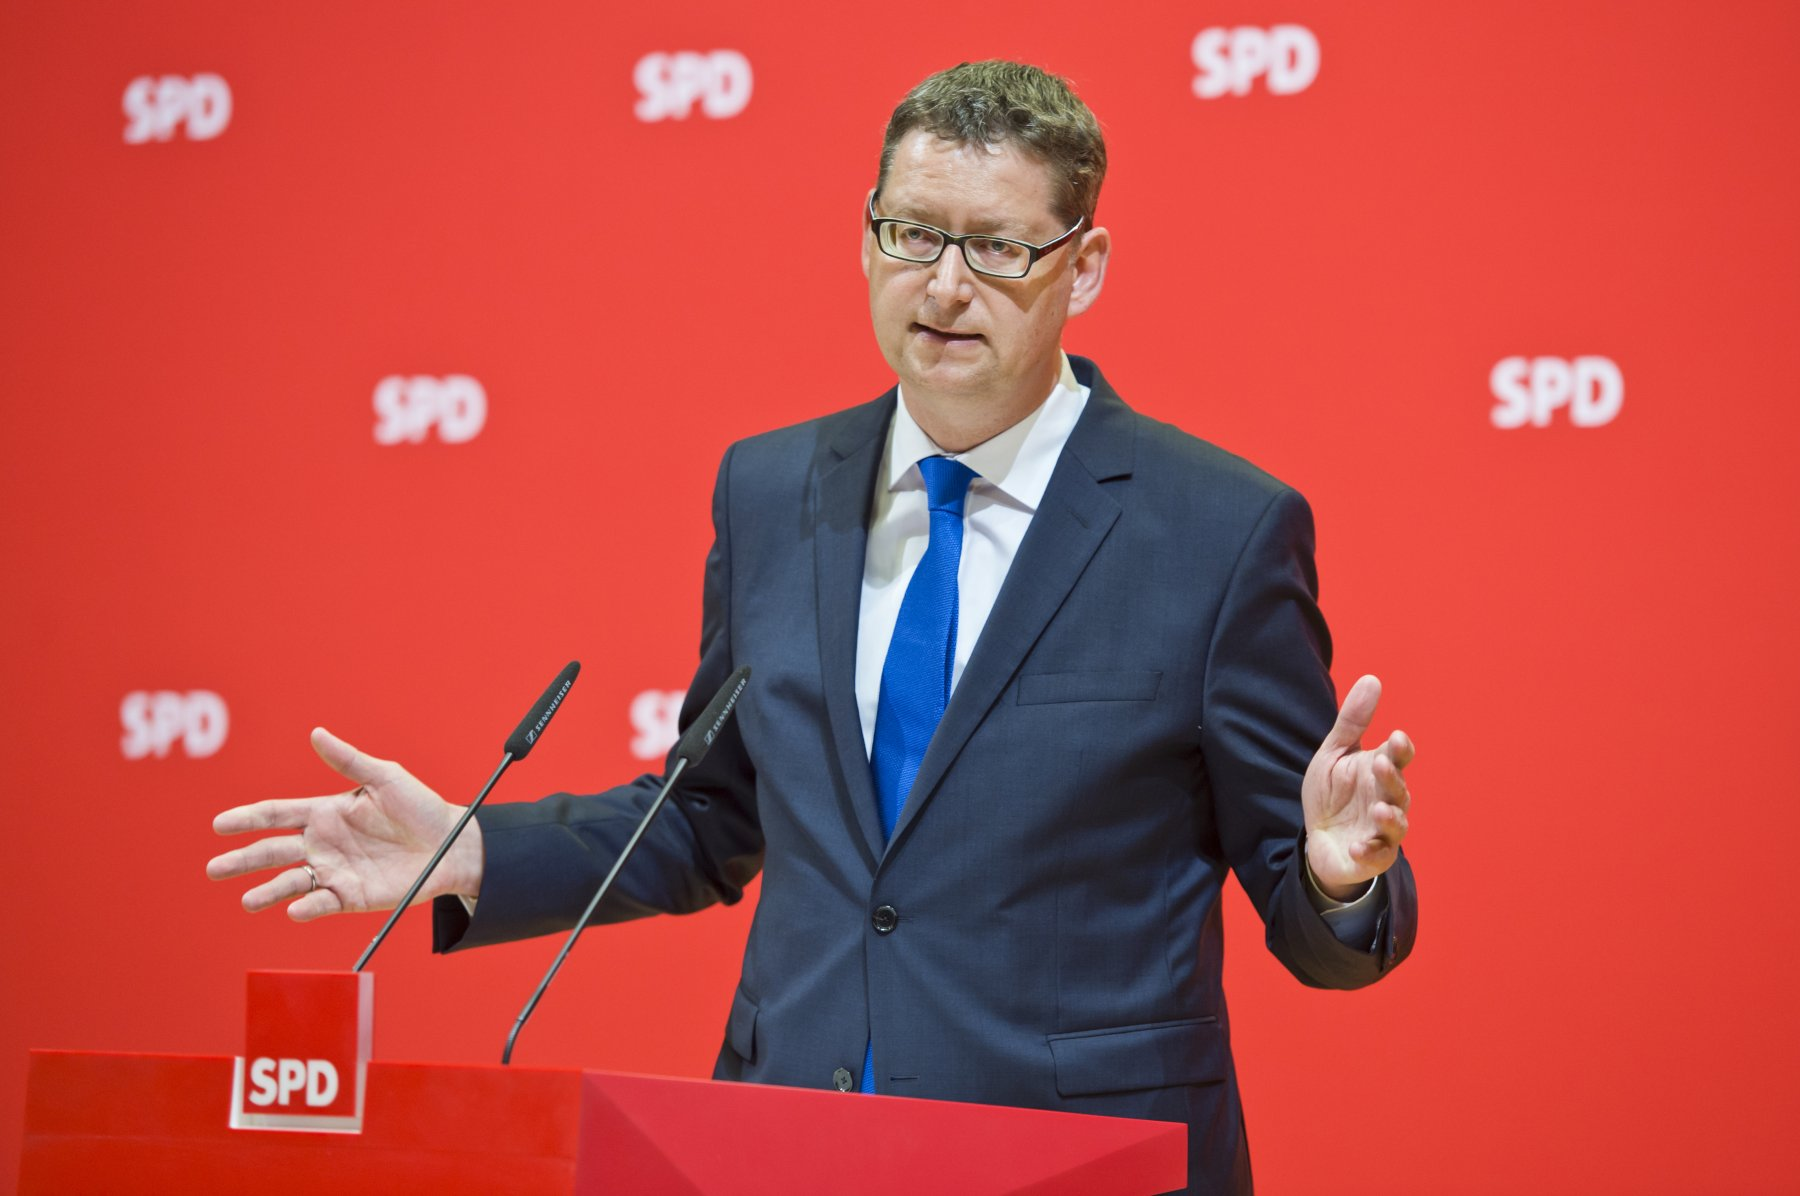 Thorsten Schäfer-Gümbel Kulturforum SPD